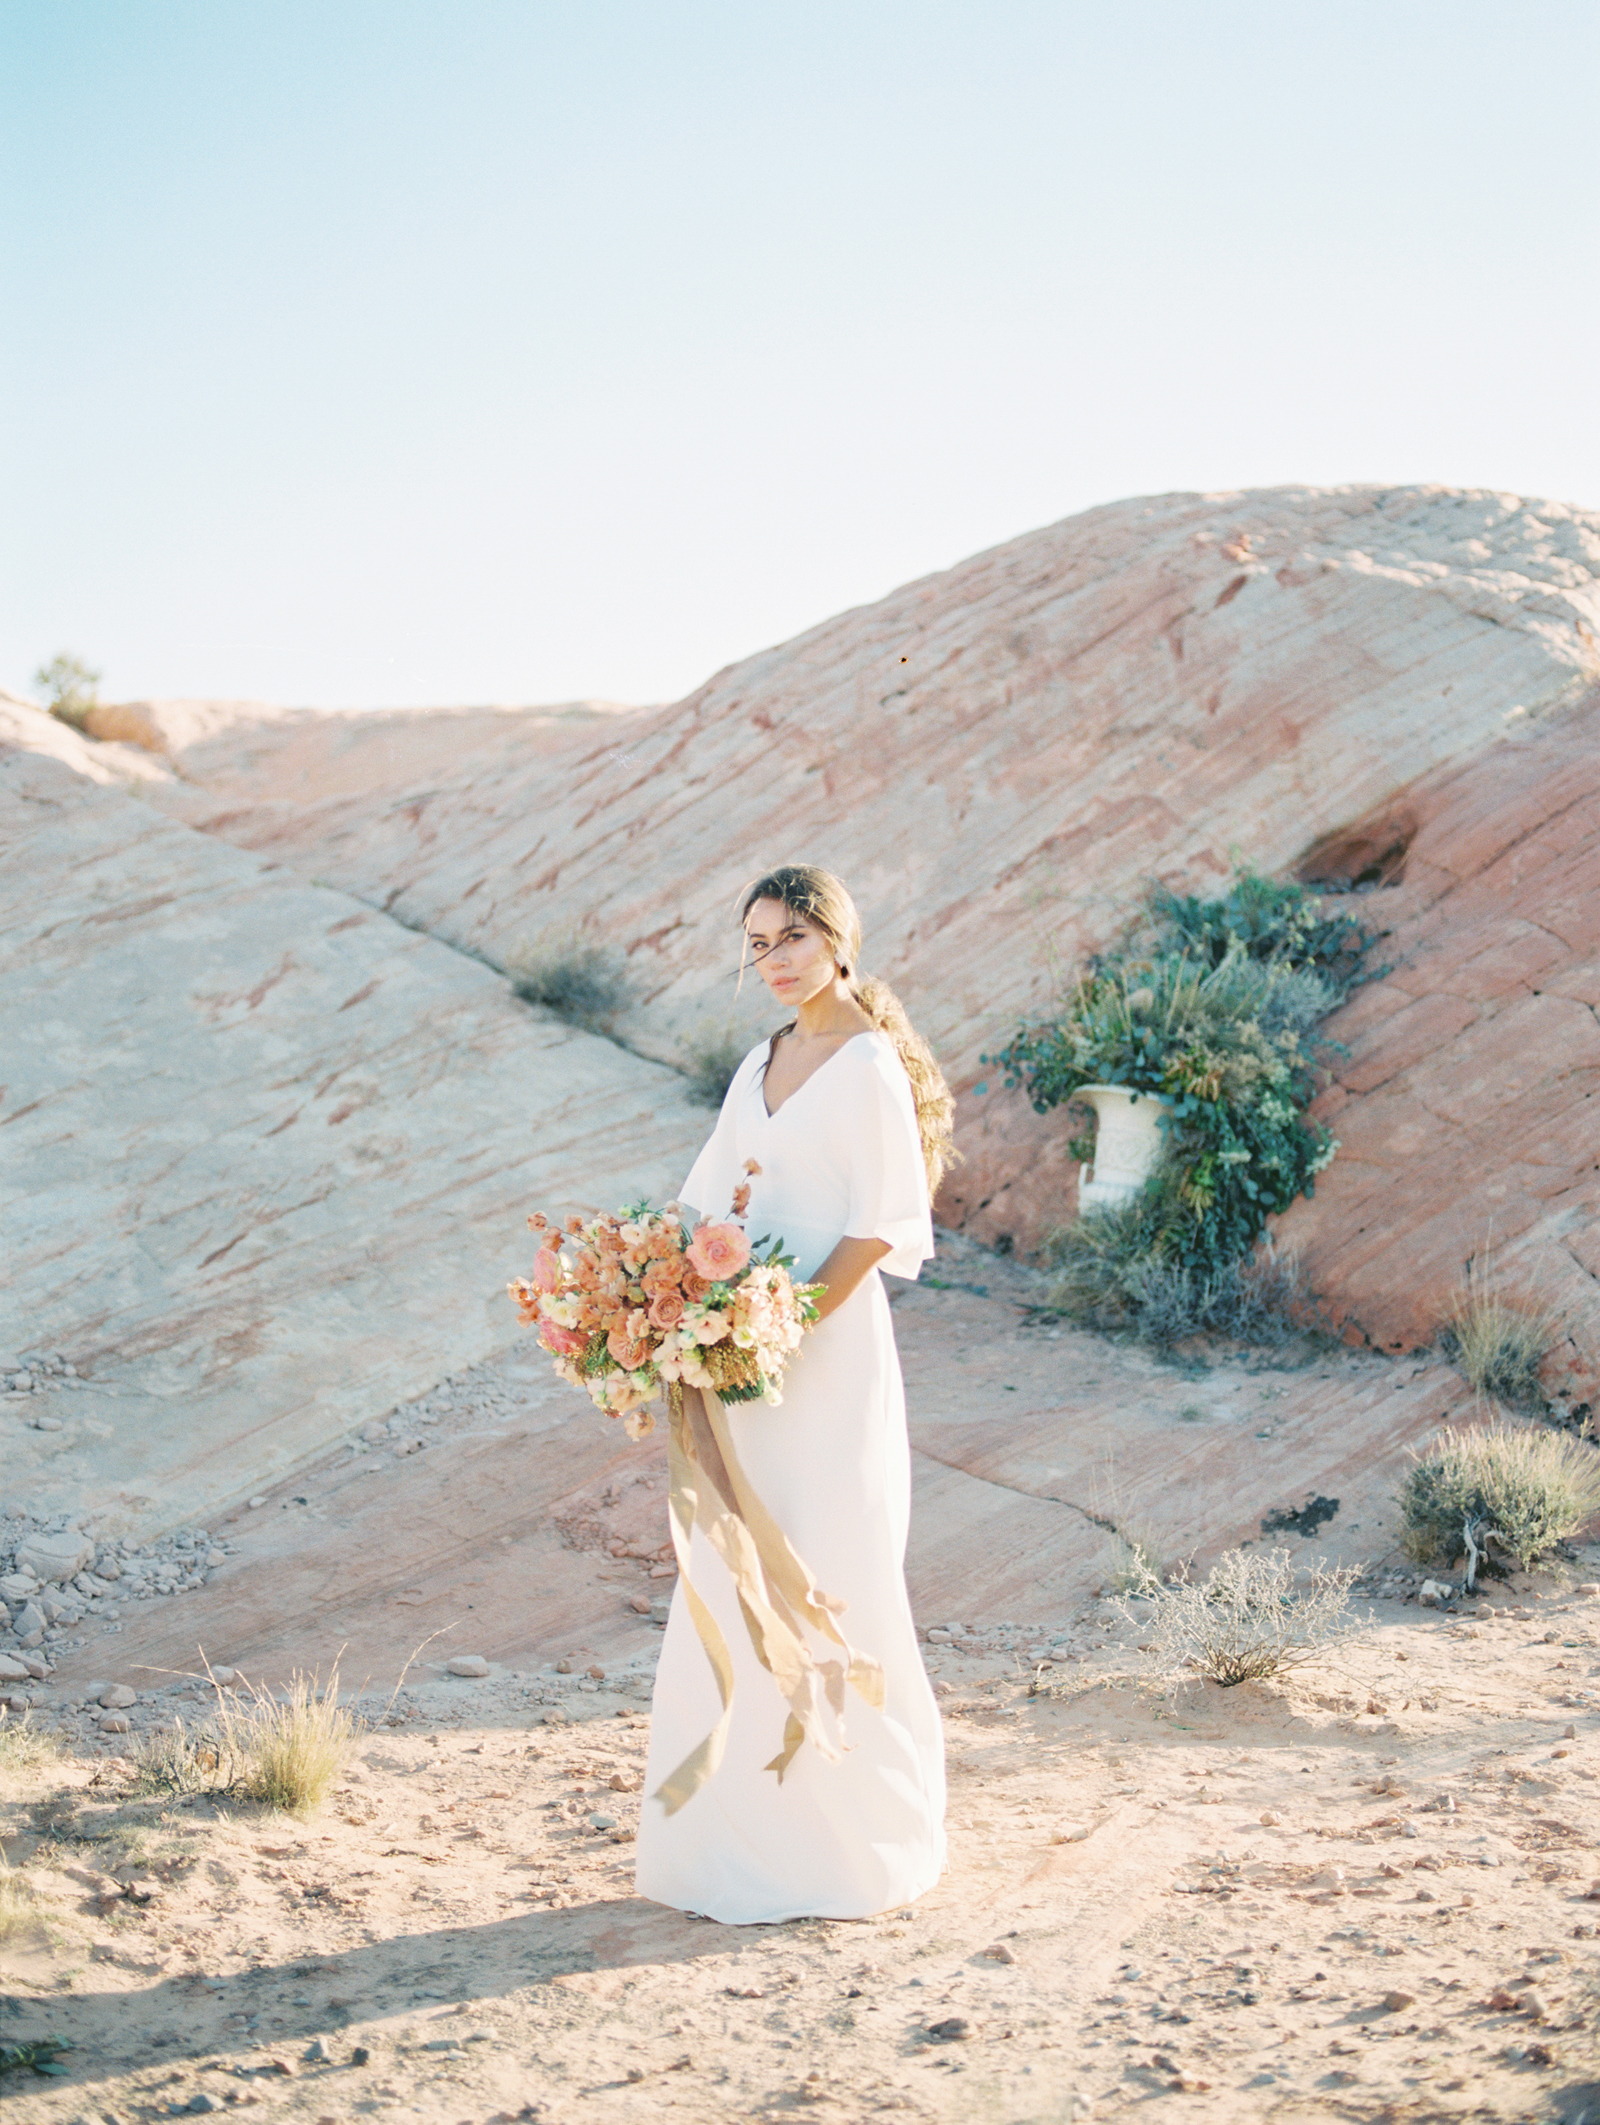 AKP_Desert_Wedding_Bridal_Shoot_Film_Fine_Art_Wedding_Photographer_Los_Angeles-12.jpg